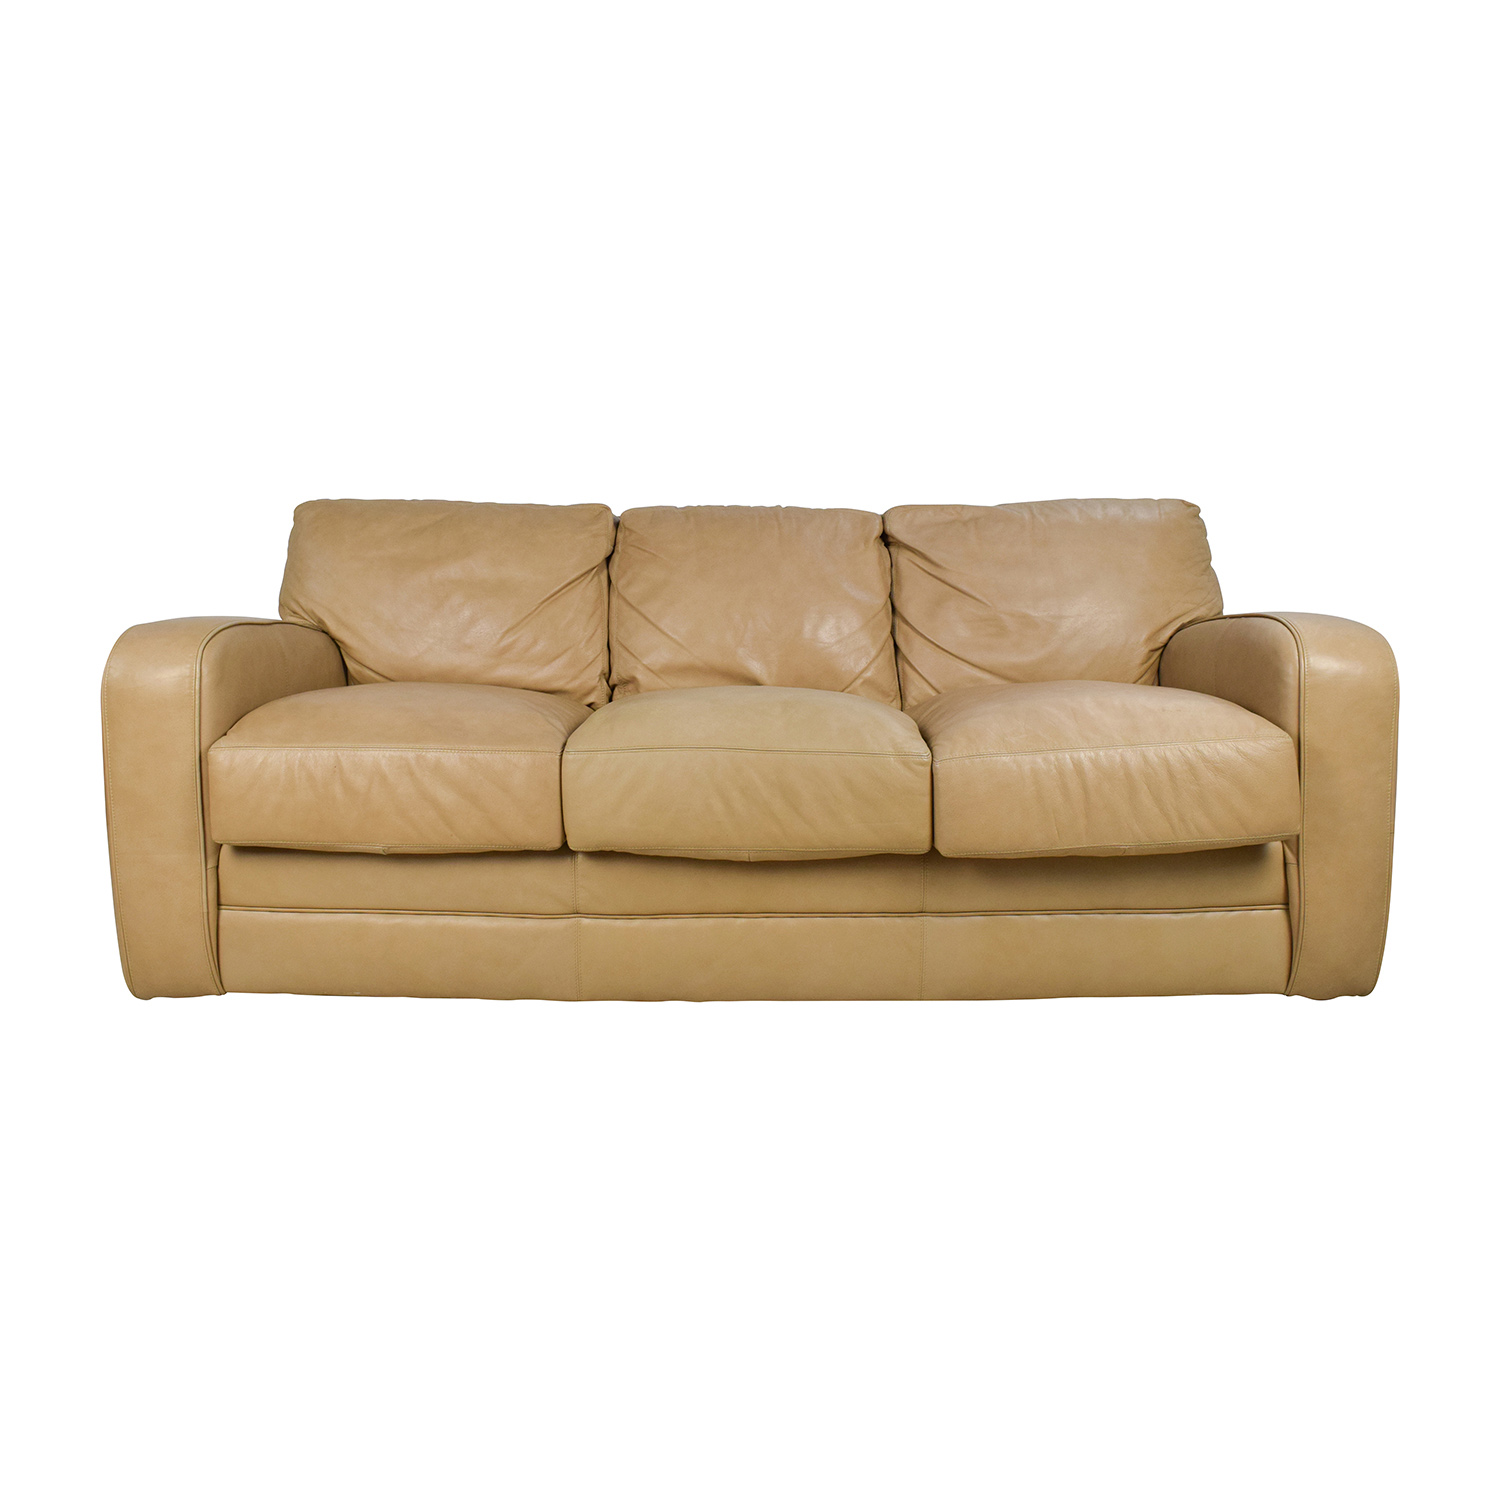 second hand leather sofas  u2013 thesofa